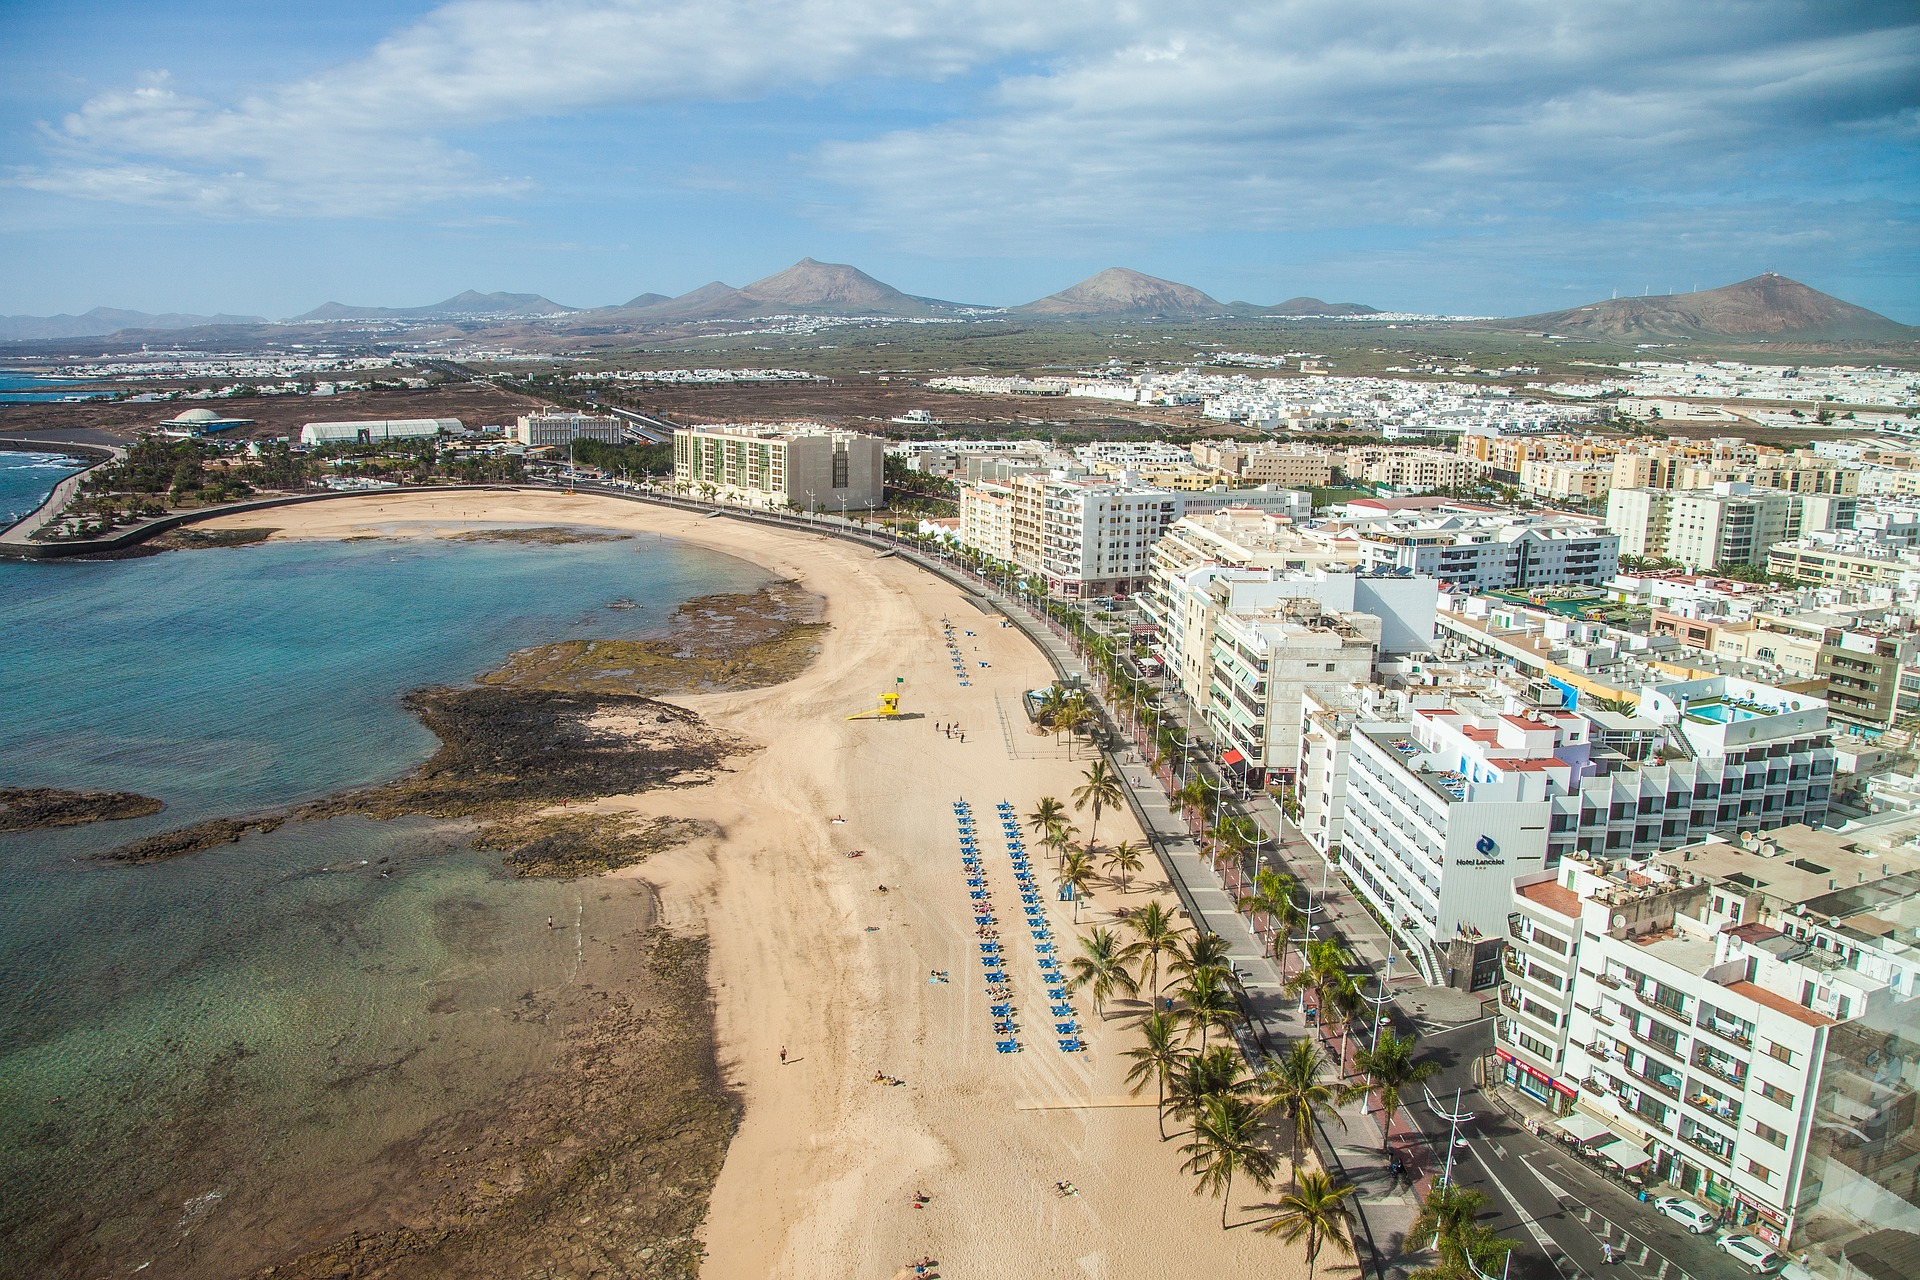 Lanzarote beach and hotels